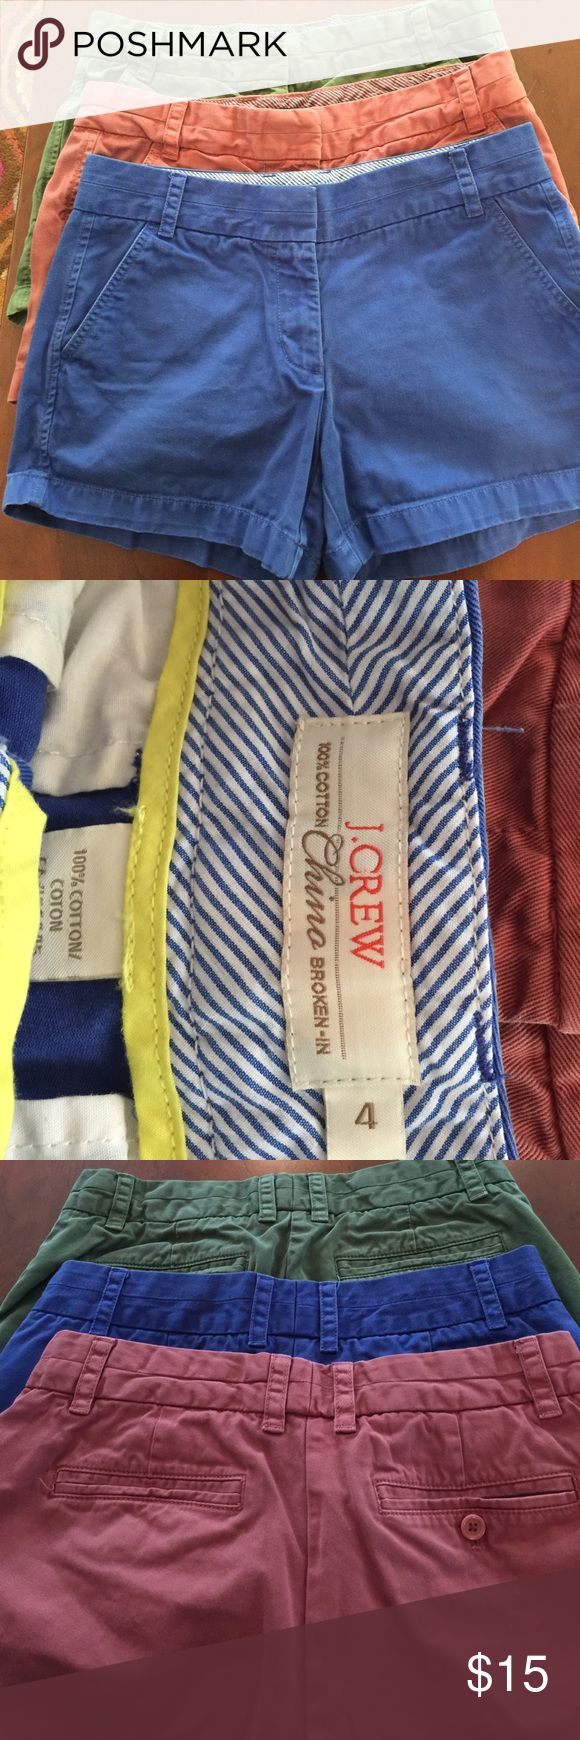 "Bundle of 3 J Crew broken in shorts size 4. 4"" J.Crew Broken-In Chino shorts. 4"" long. Olive, Cobalt blue, Washed red colours. 100% cotton. In Very Good used condition. Bundled all 3 for one low price. J. Crew Shorts"